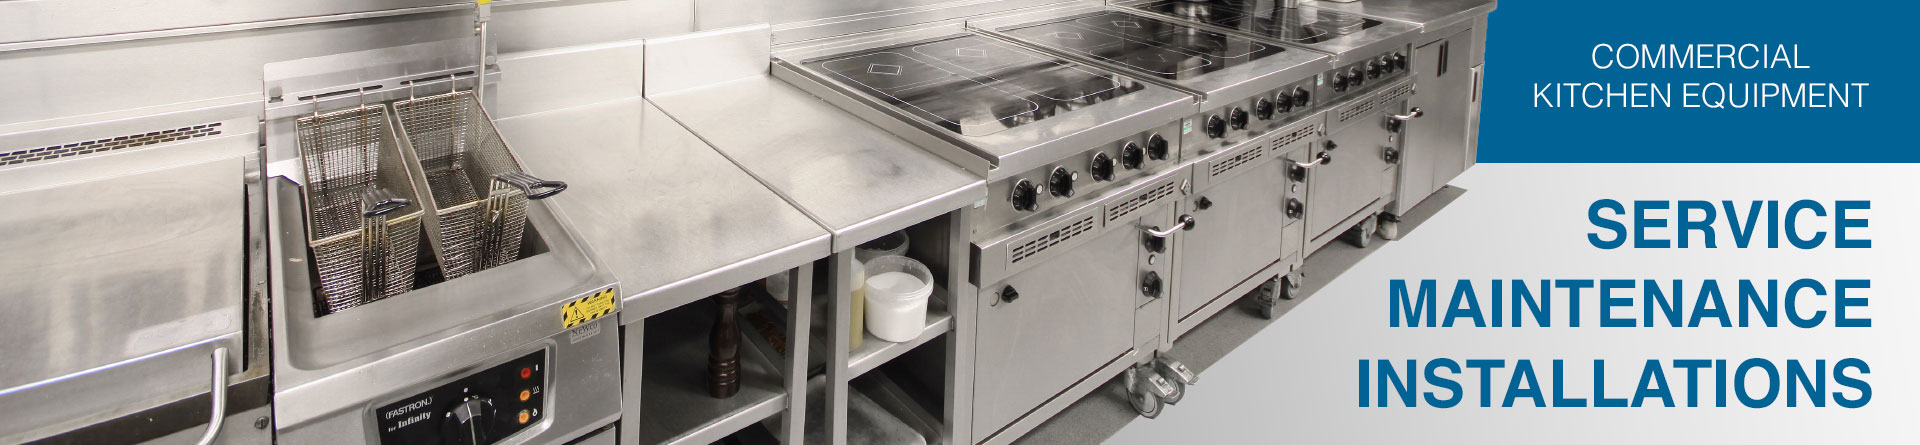 Alliance Mechanical Services have trained cooking technicians for commercial kitchen equipment service and repairs.